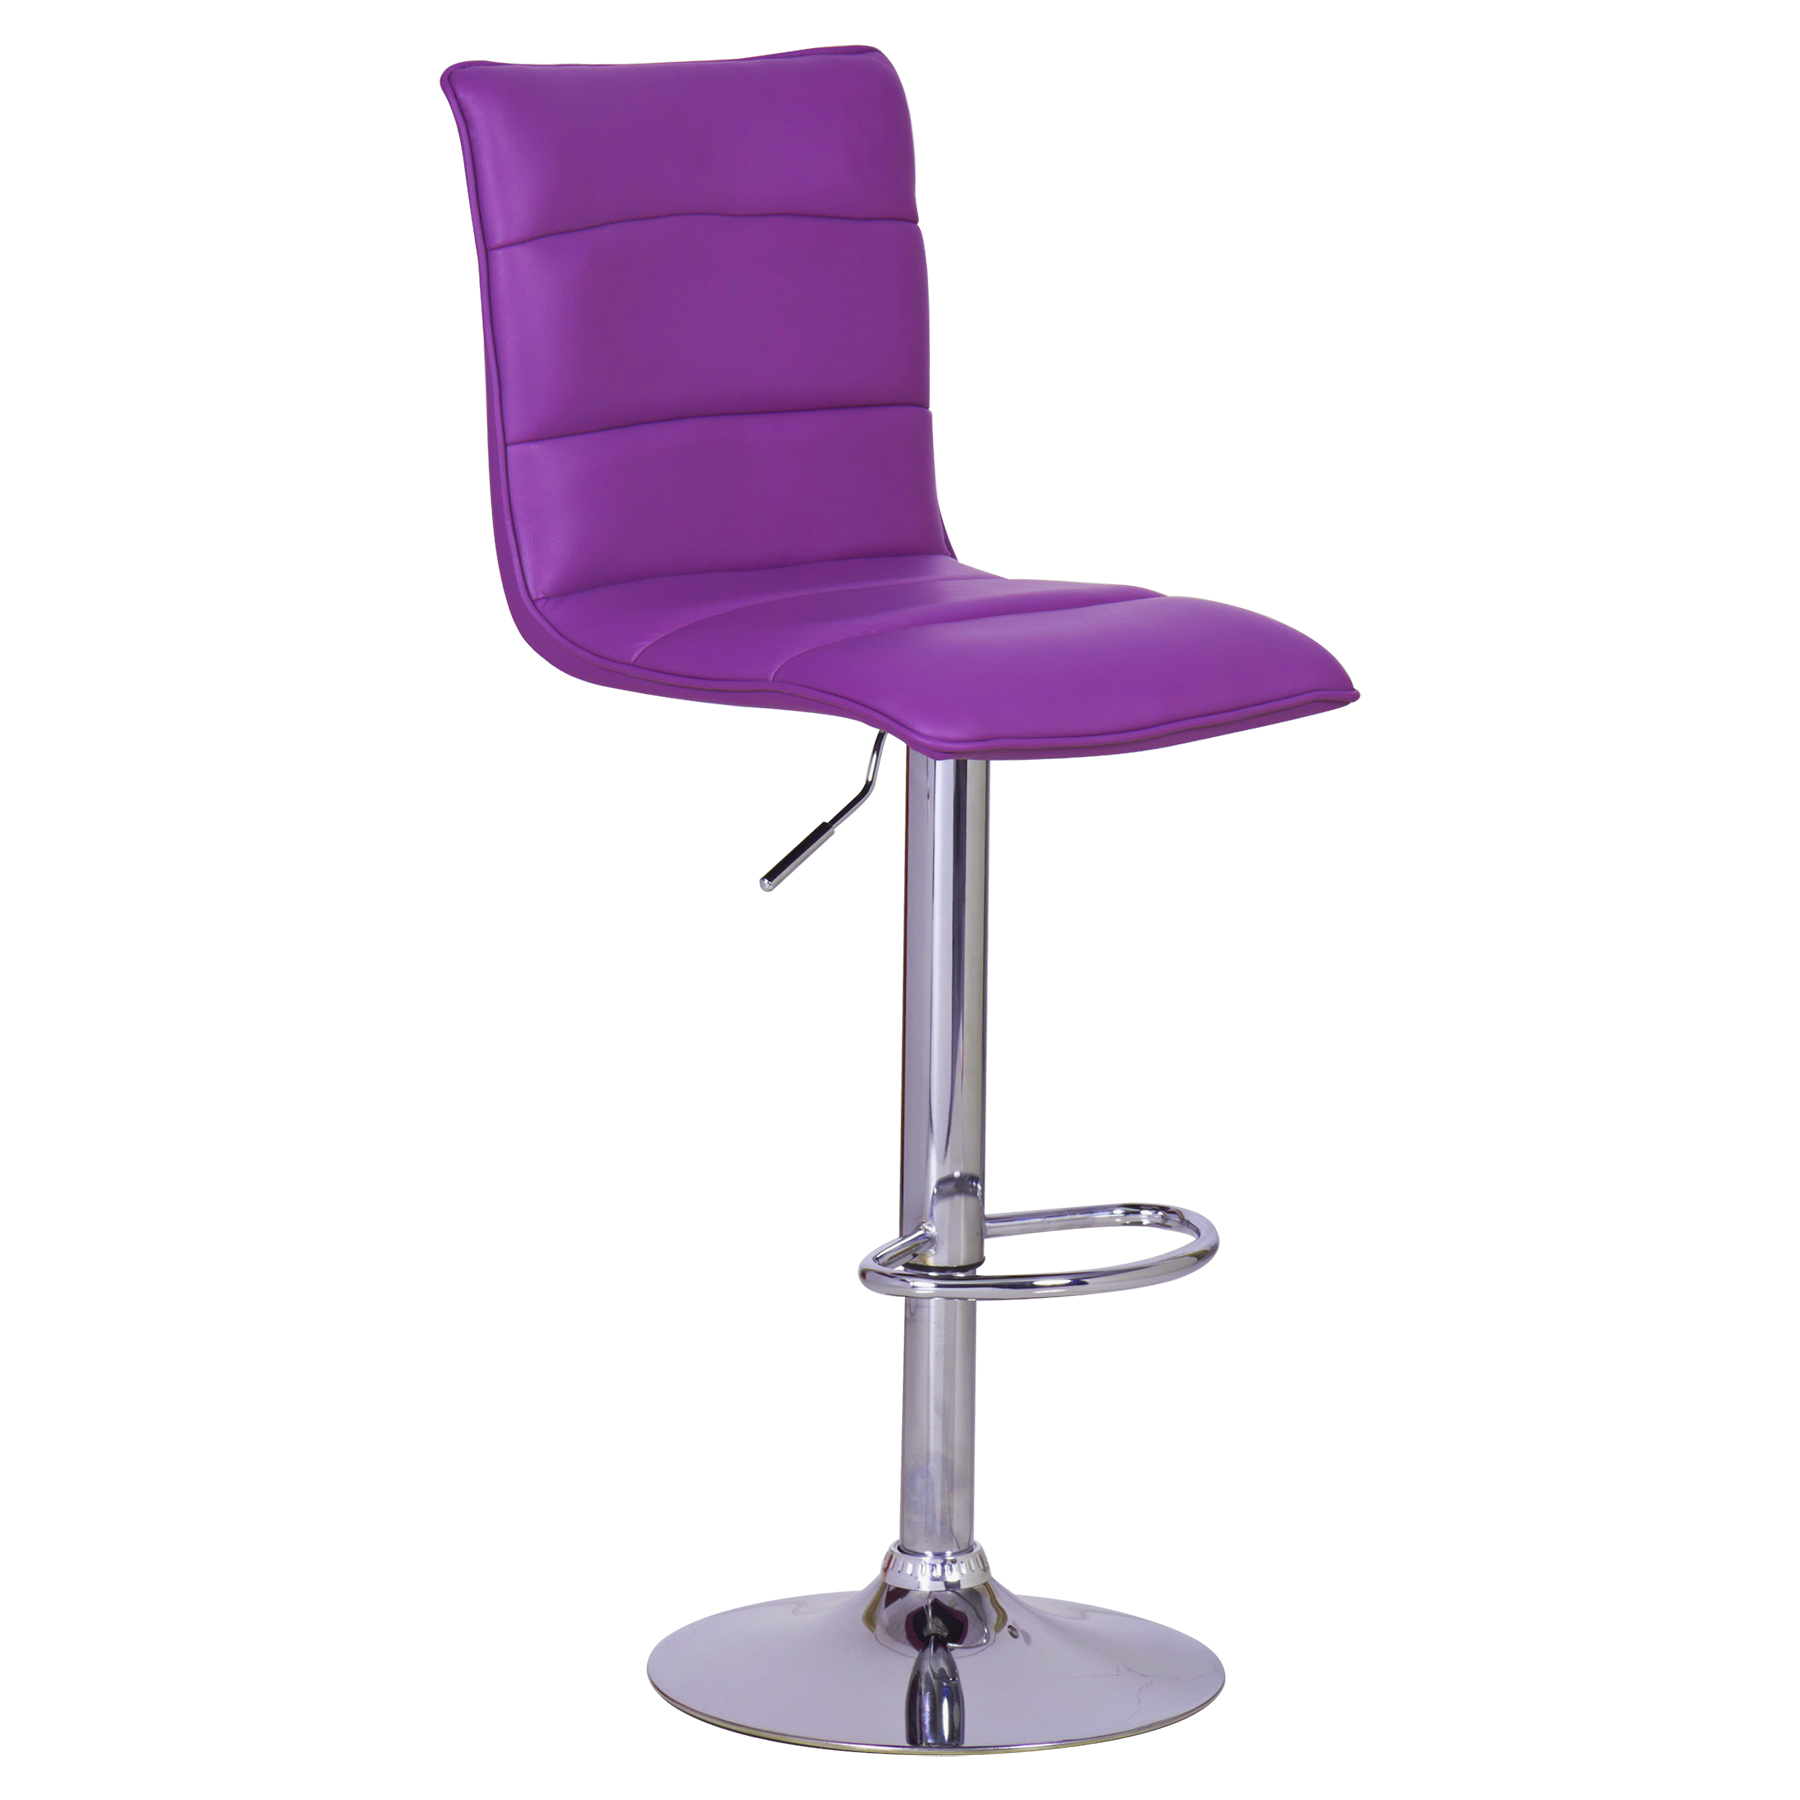 1 x tabouret de bar cuisine r glable cuir synth tique - Chaise bar reglable ...